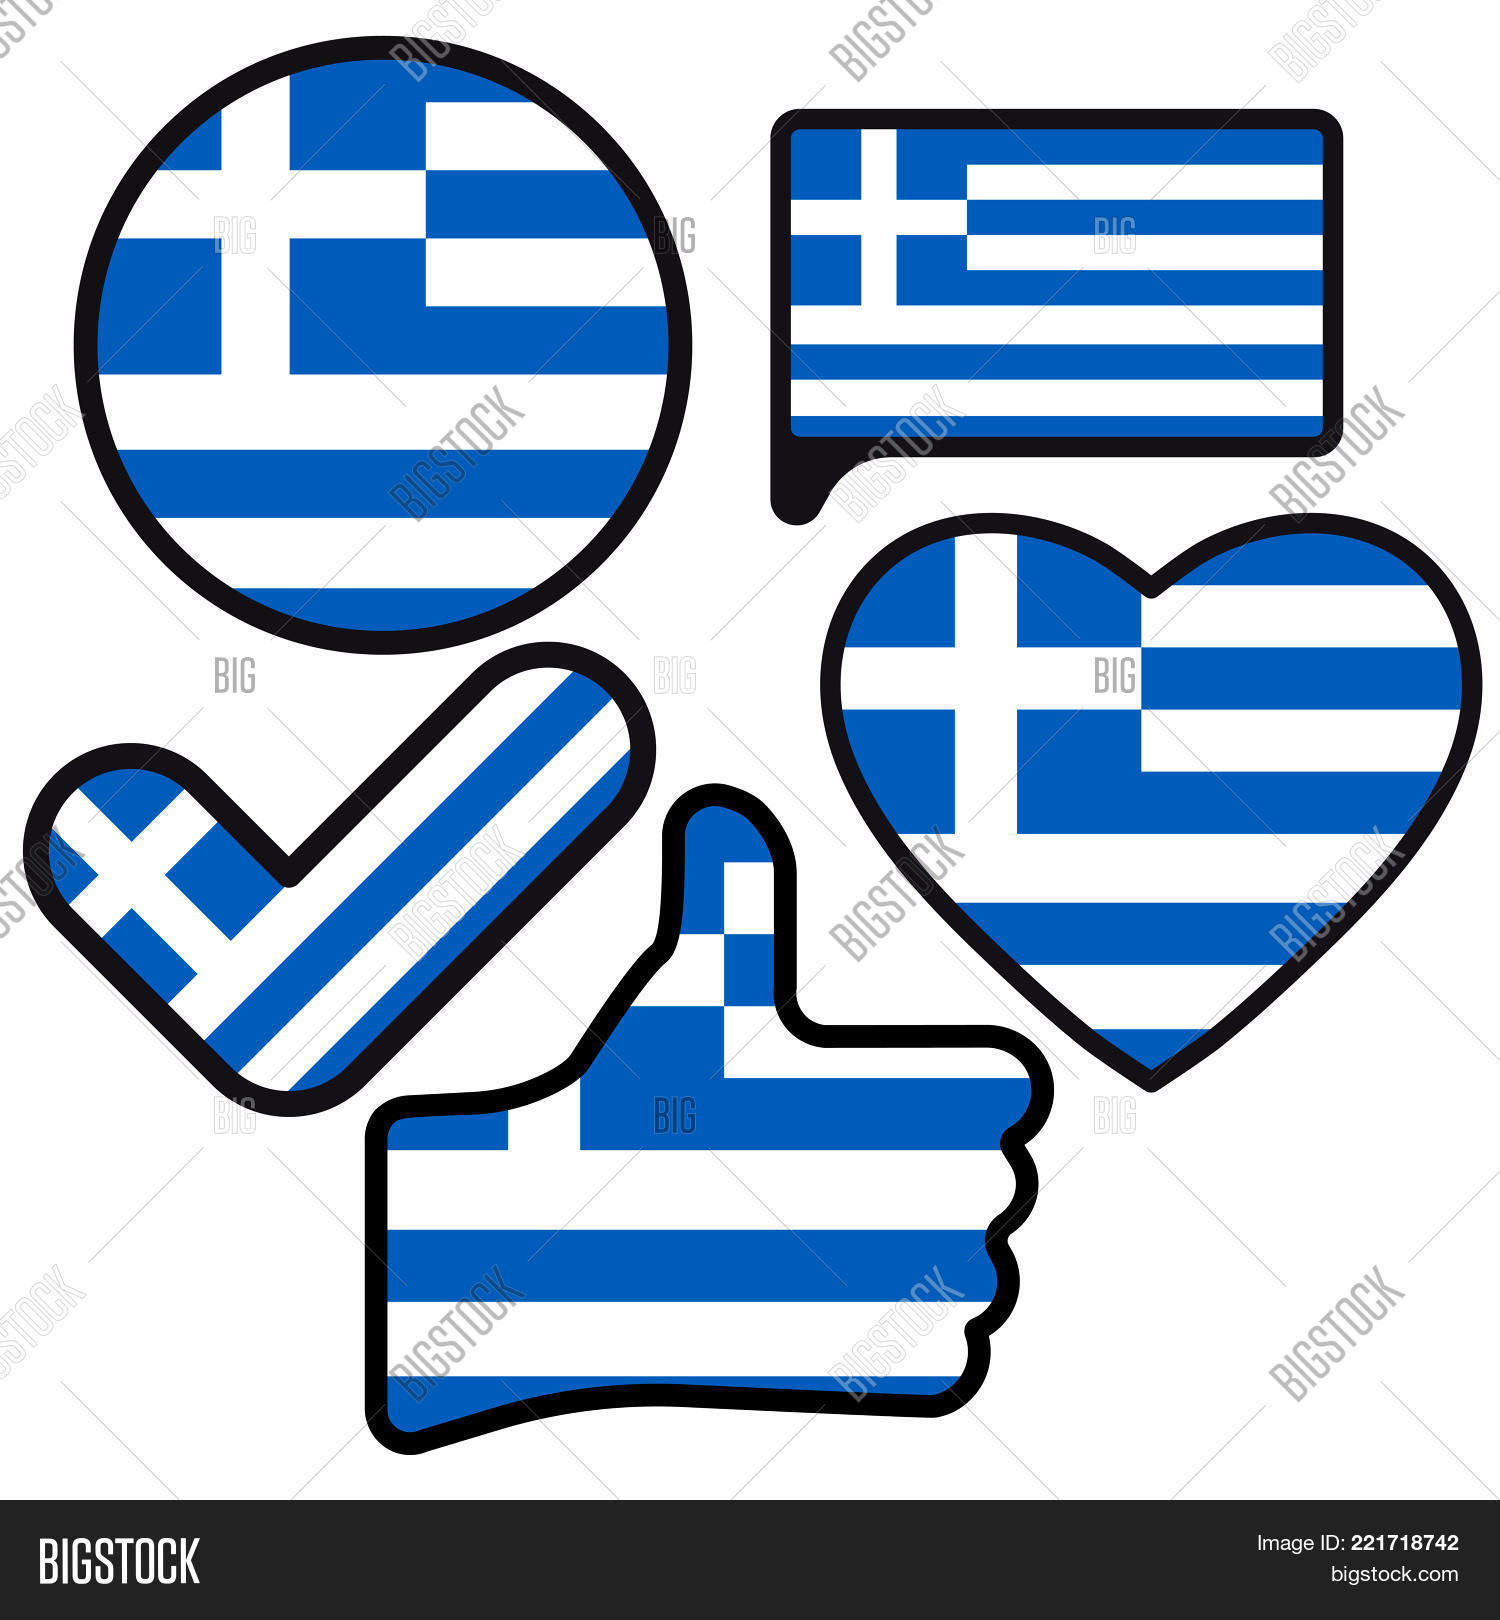 Flag Greece Shape Image Photo Free Trial Bigstock